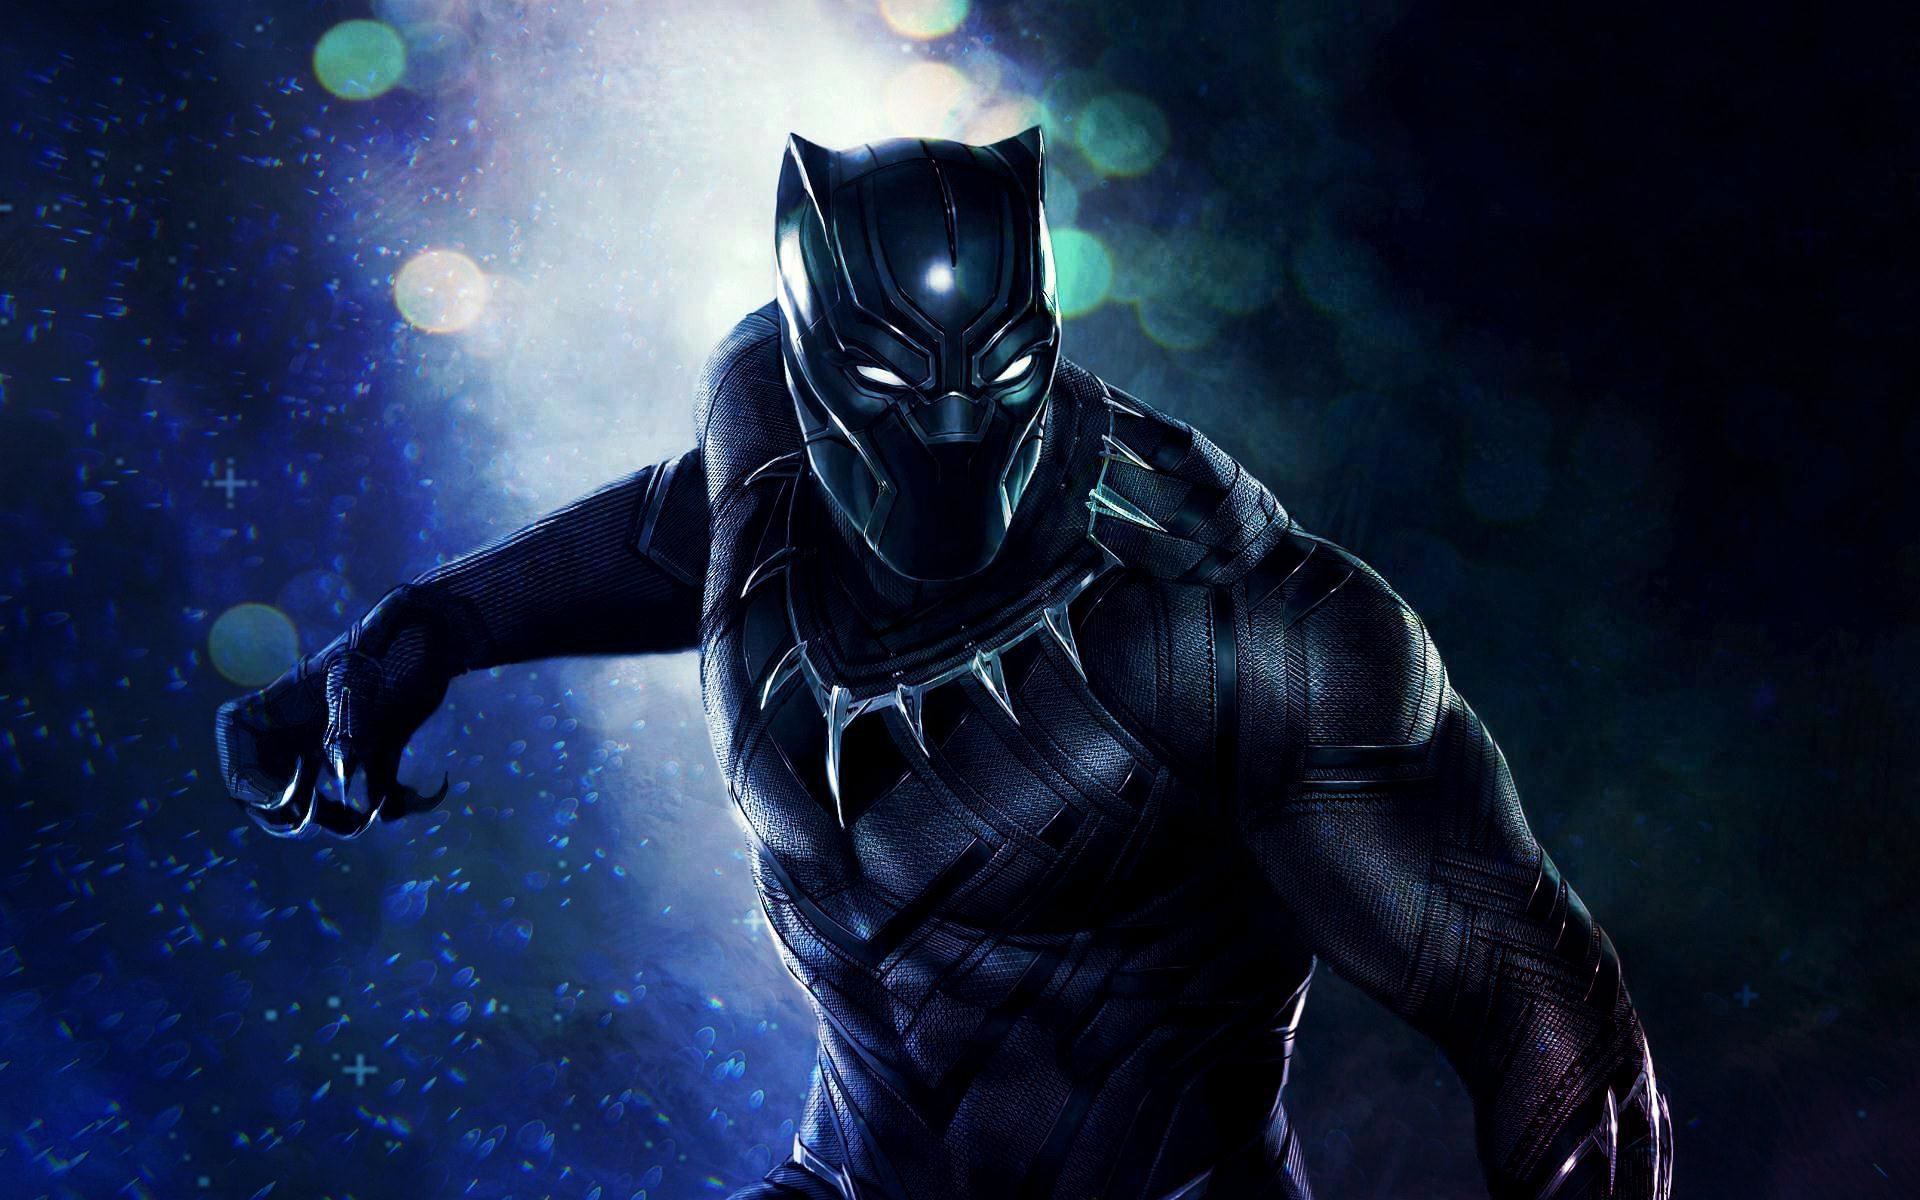 Black Panther Images amp Pictures   Becuo 1920x1200